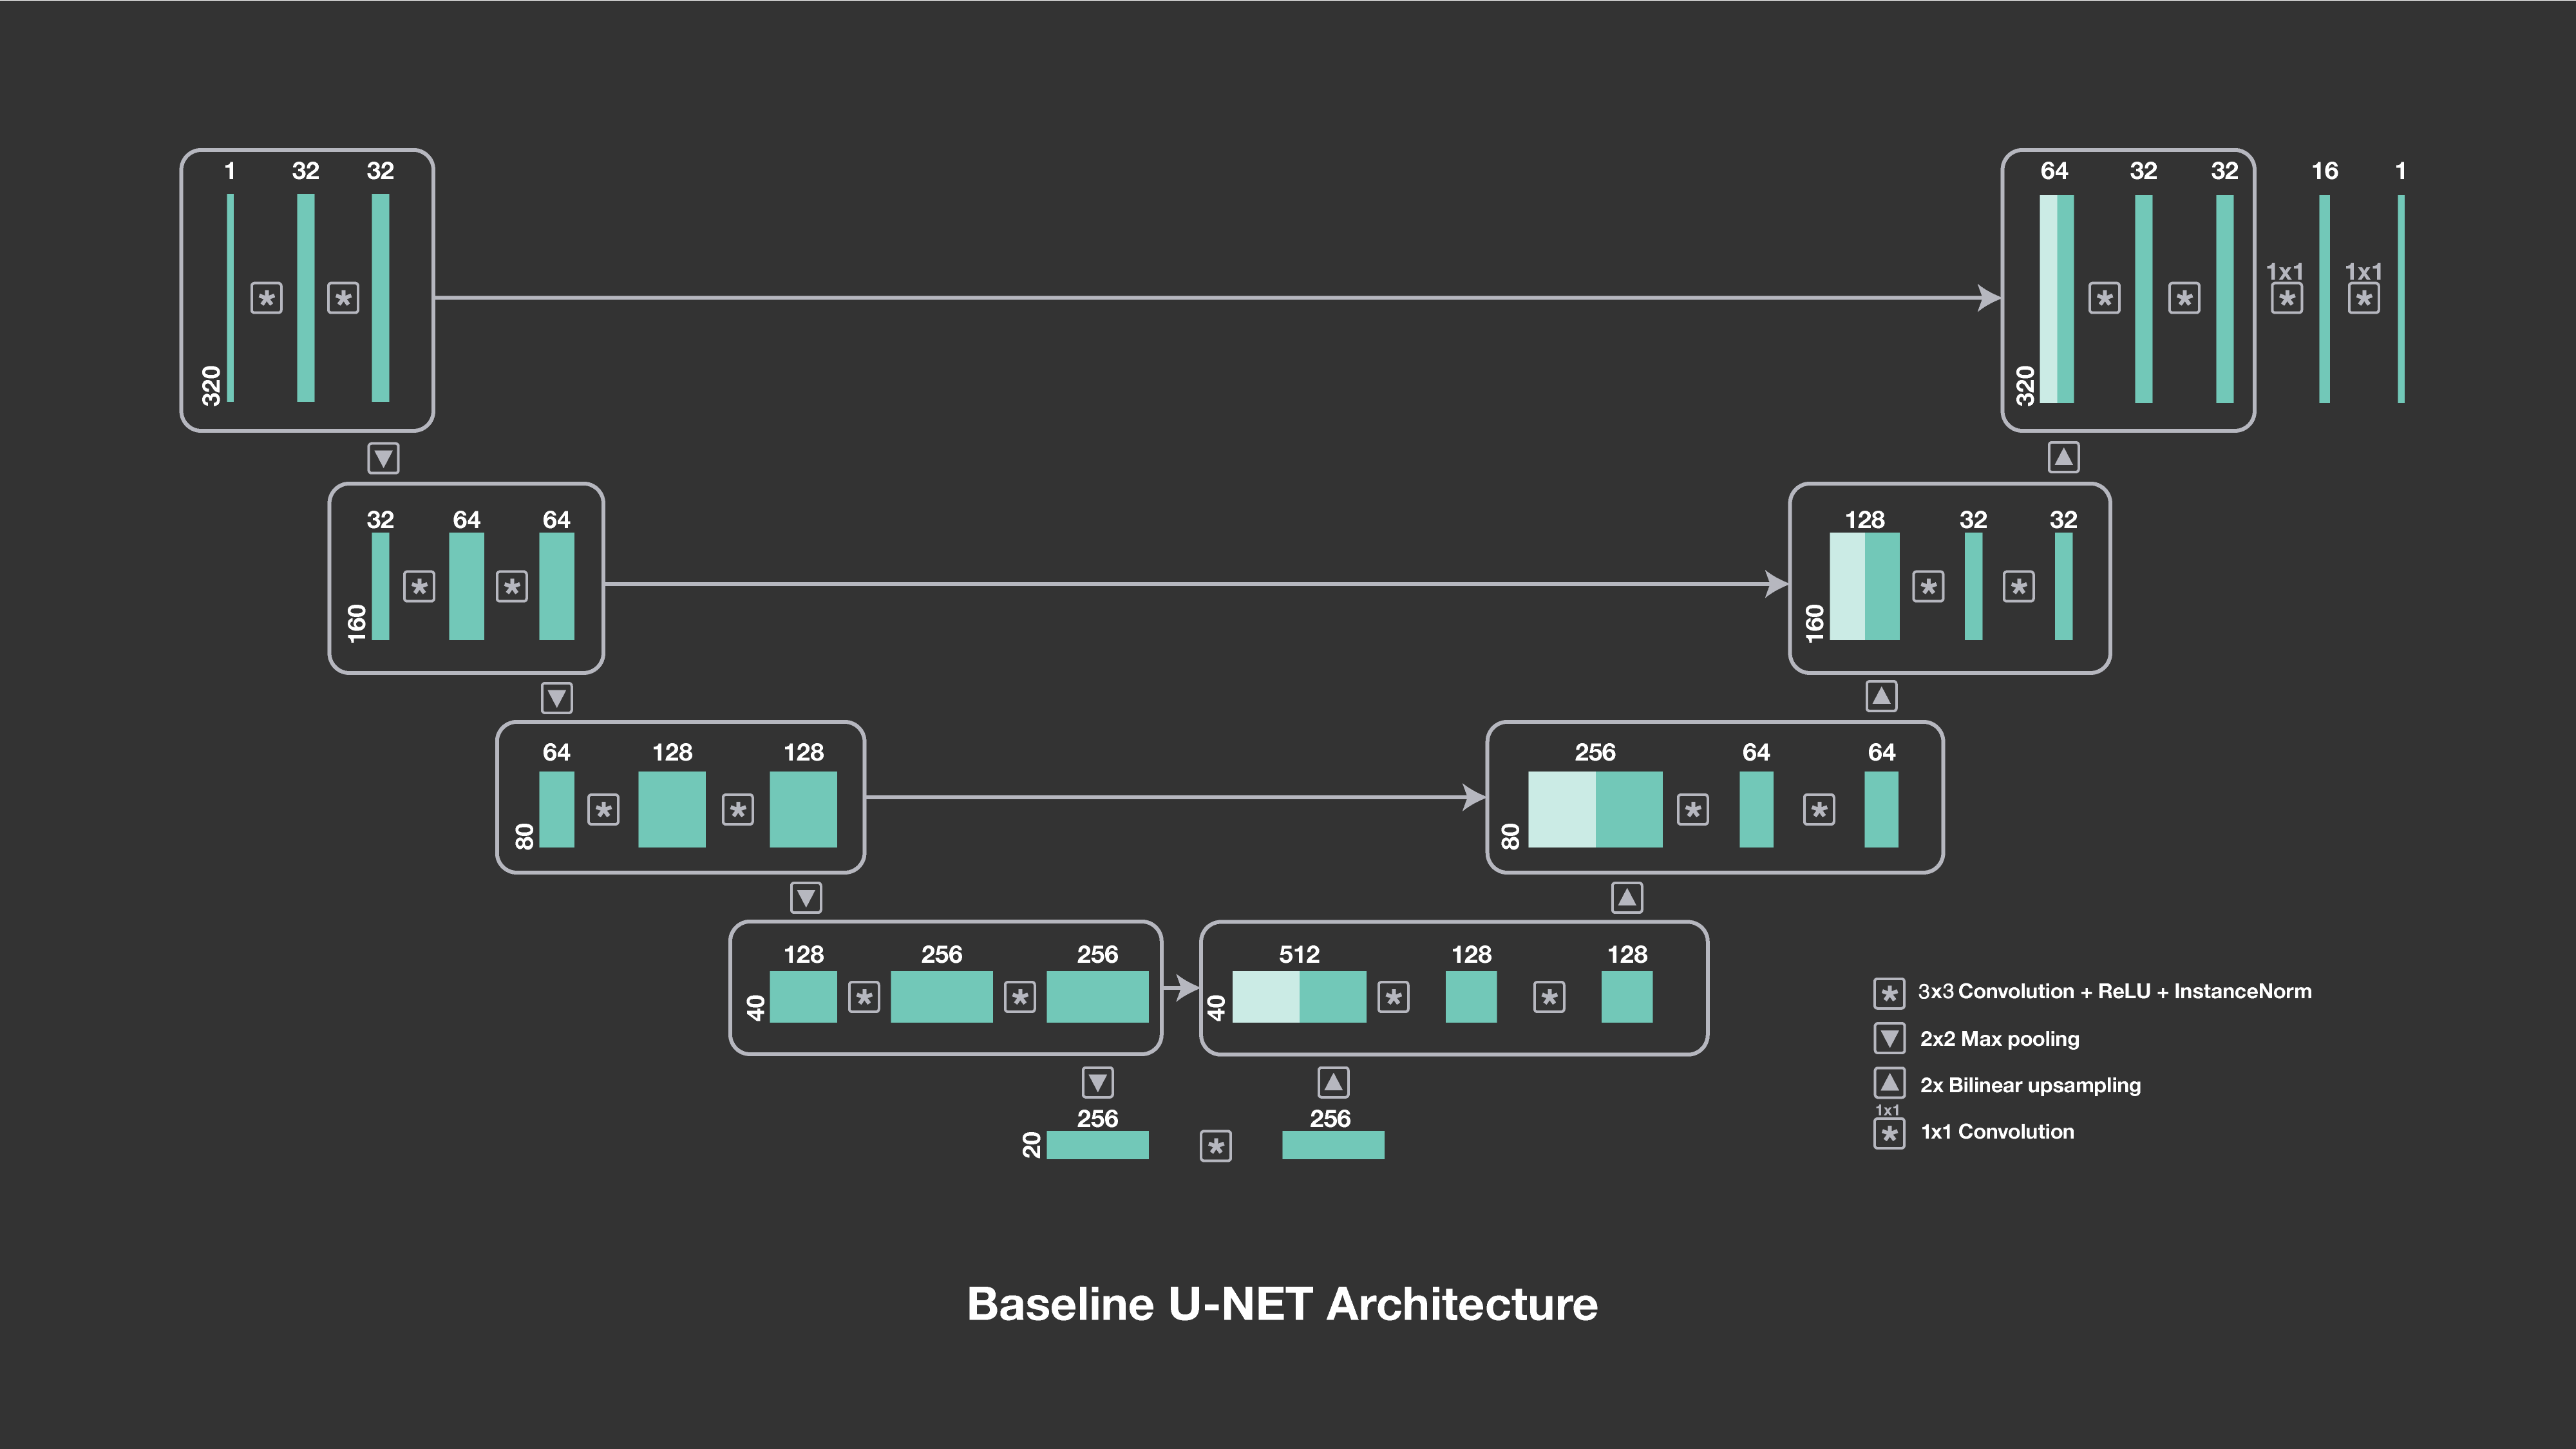 The u-net architecture consists of a downsampling path followed by an upsampling path. The numbers above the blocks indicate the number of channels, and the symbols show their interactions, including downsampling, upsampling and convolutions.